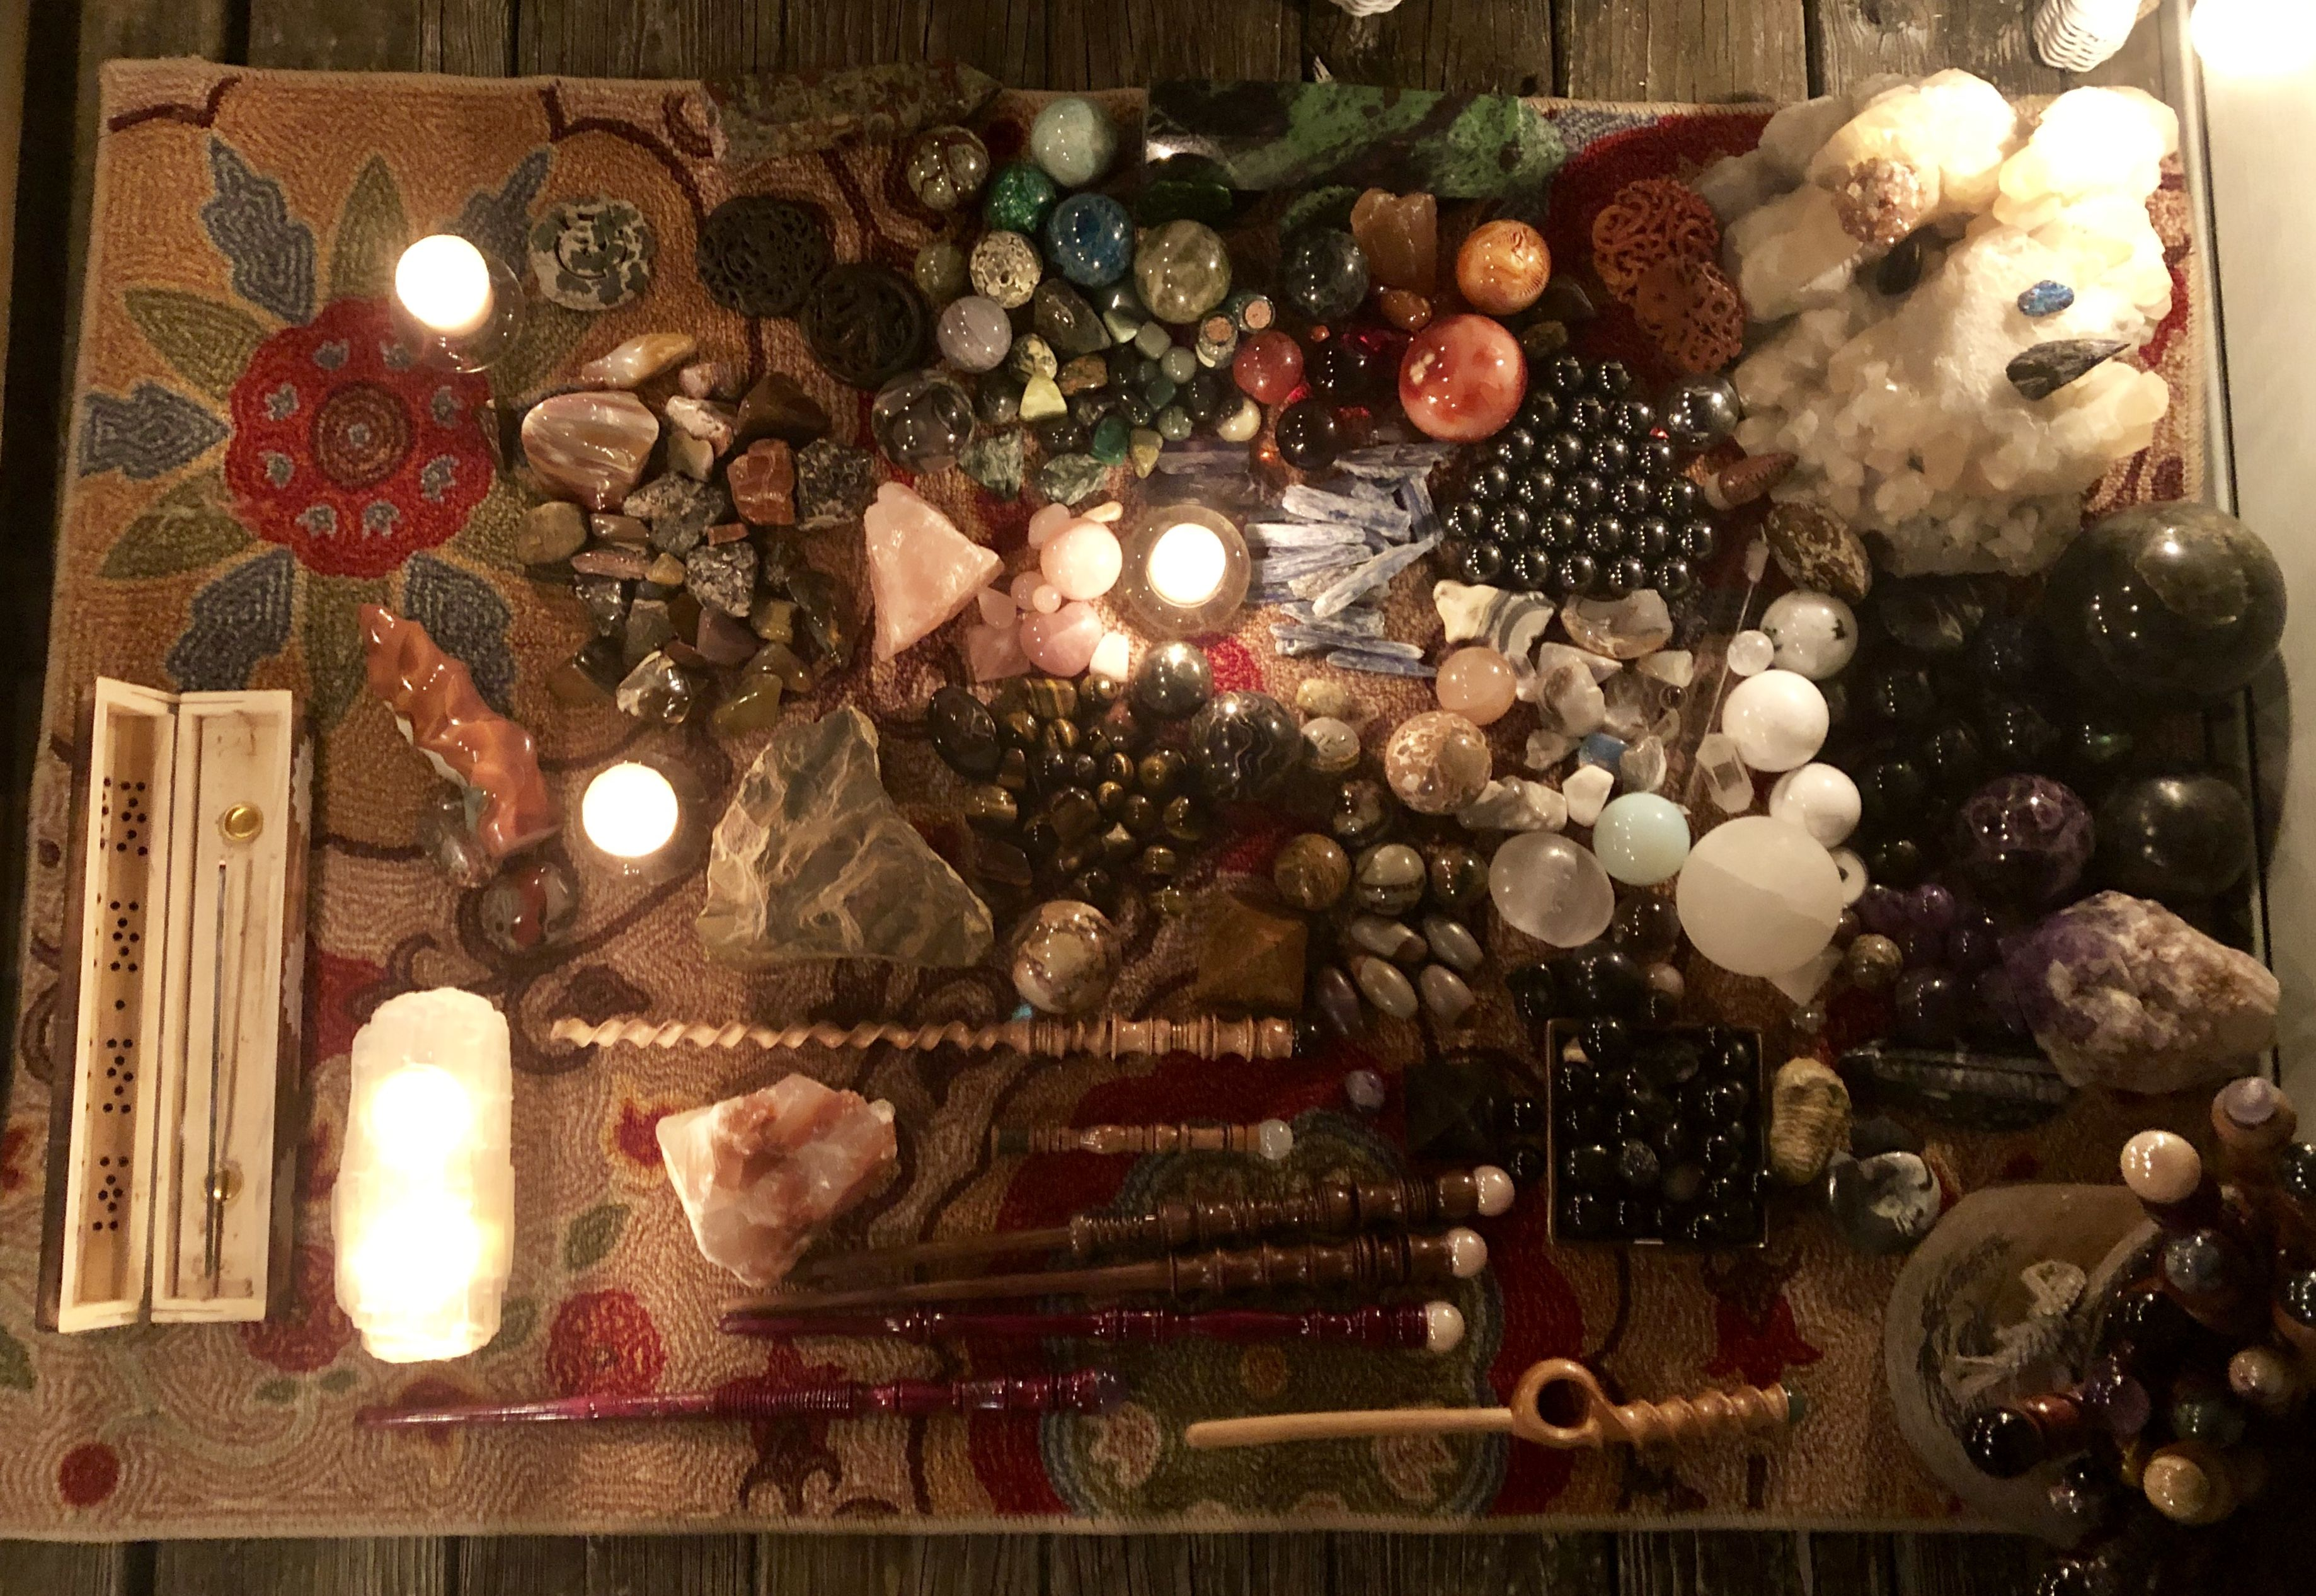 how to cleanse and charge crystals new moon